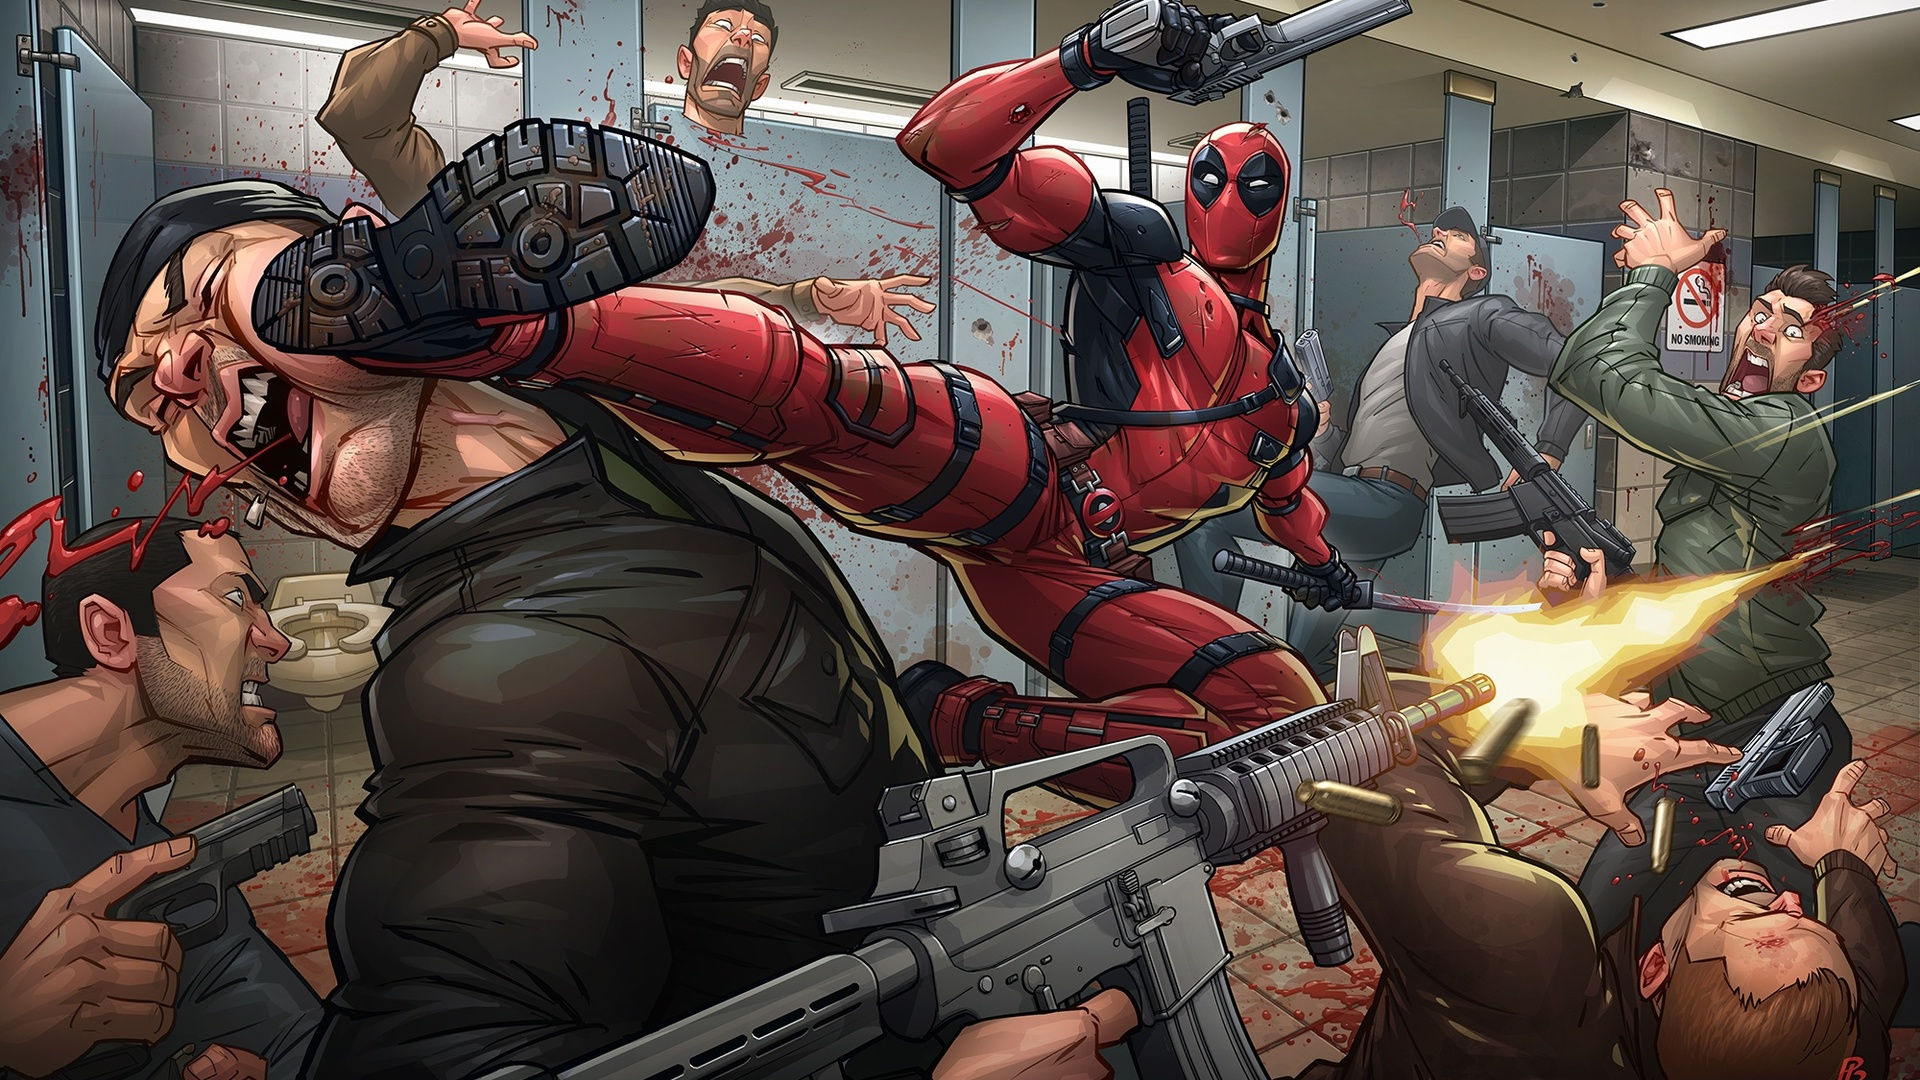 1920x1080 Deadpool 2 Fanart Laptop Full Hd 1080p Hd 4k Wallpapers